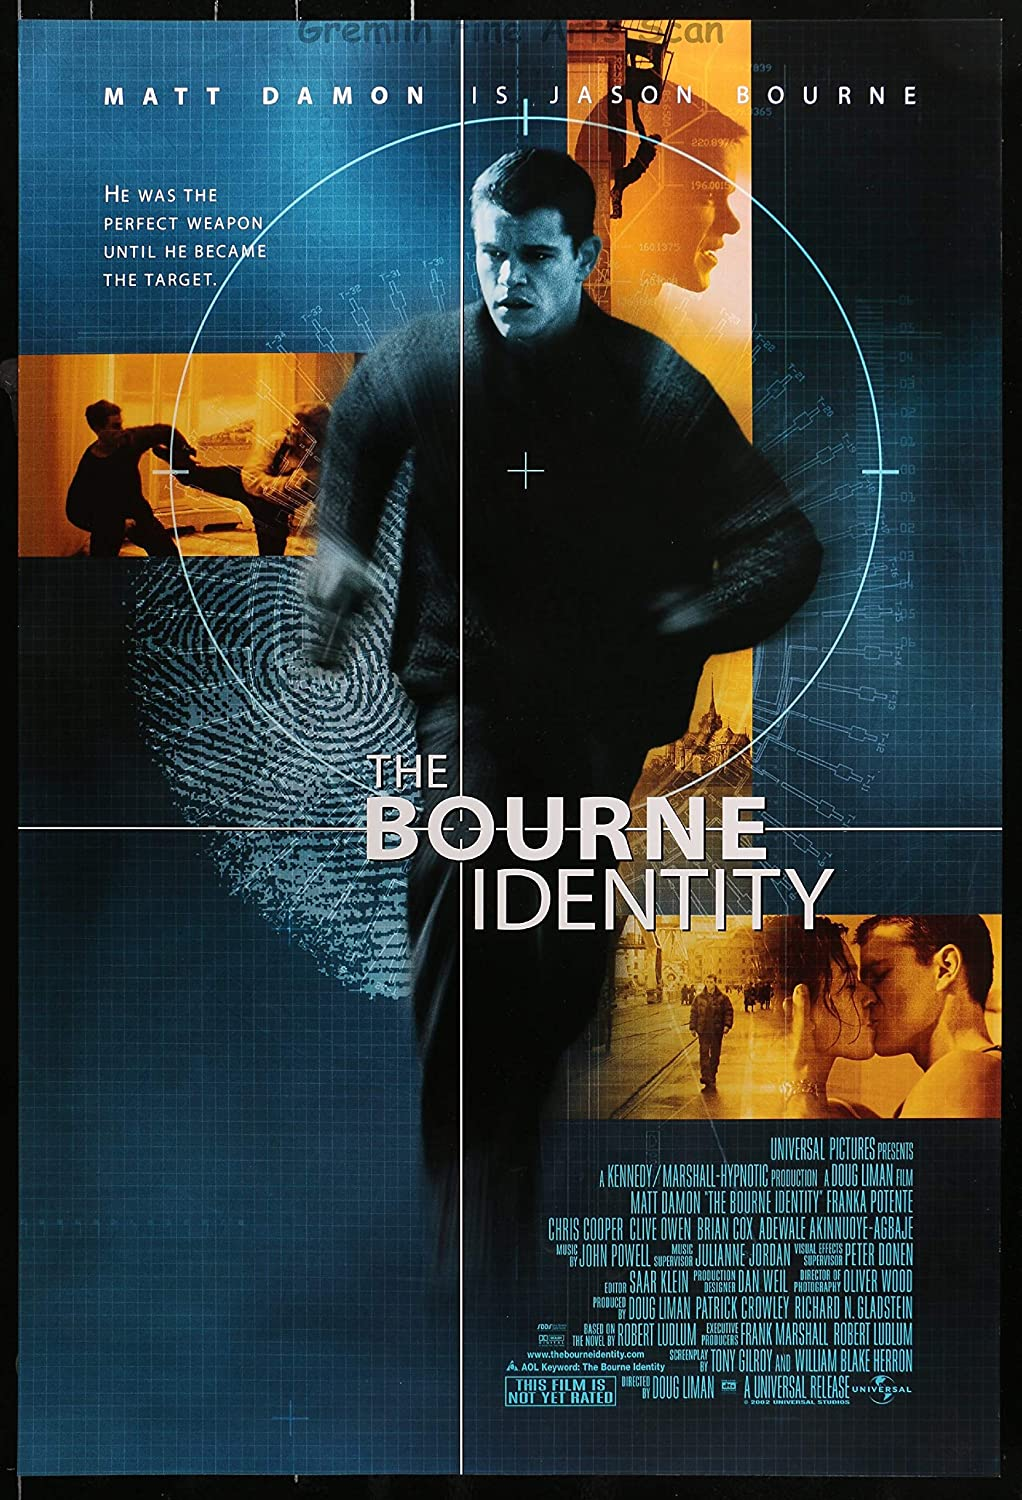 The Bourne Identity 2002 Theatrical Movie Poster Starring Matt Damon At Amazon S Entertainment Collectibles Store